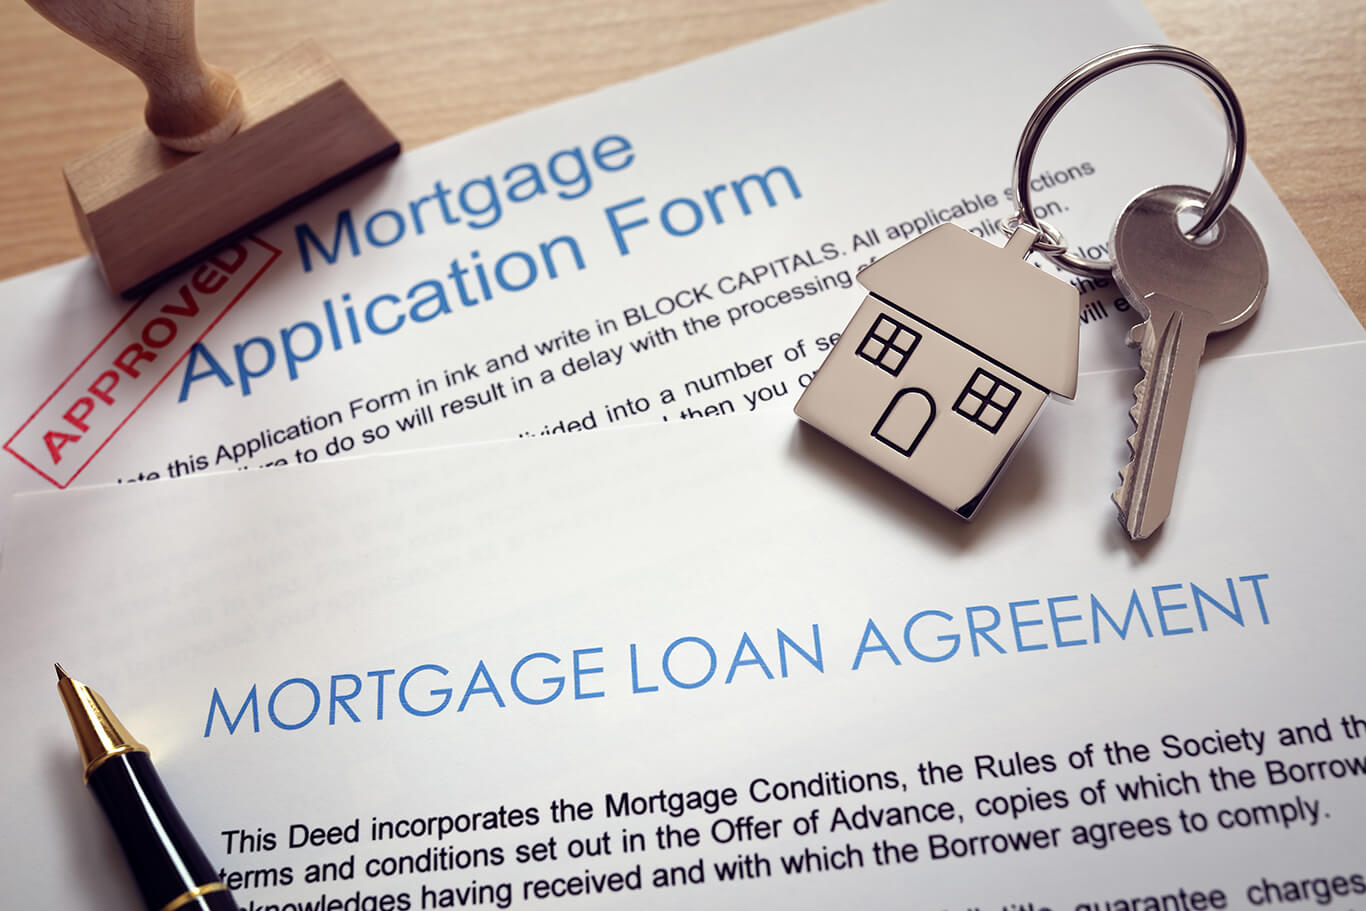 Number of new mortgages fell in November